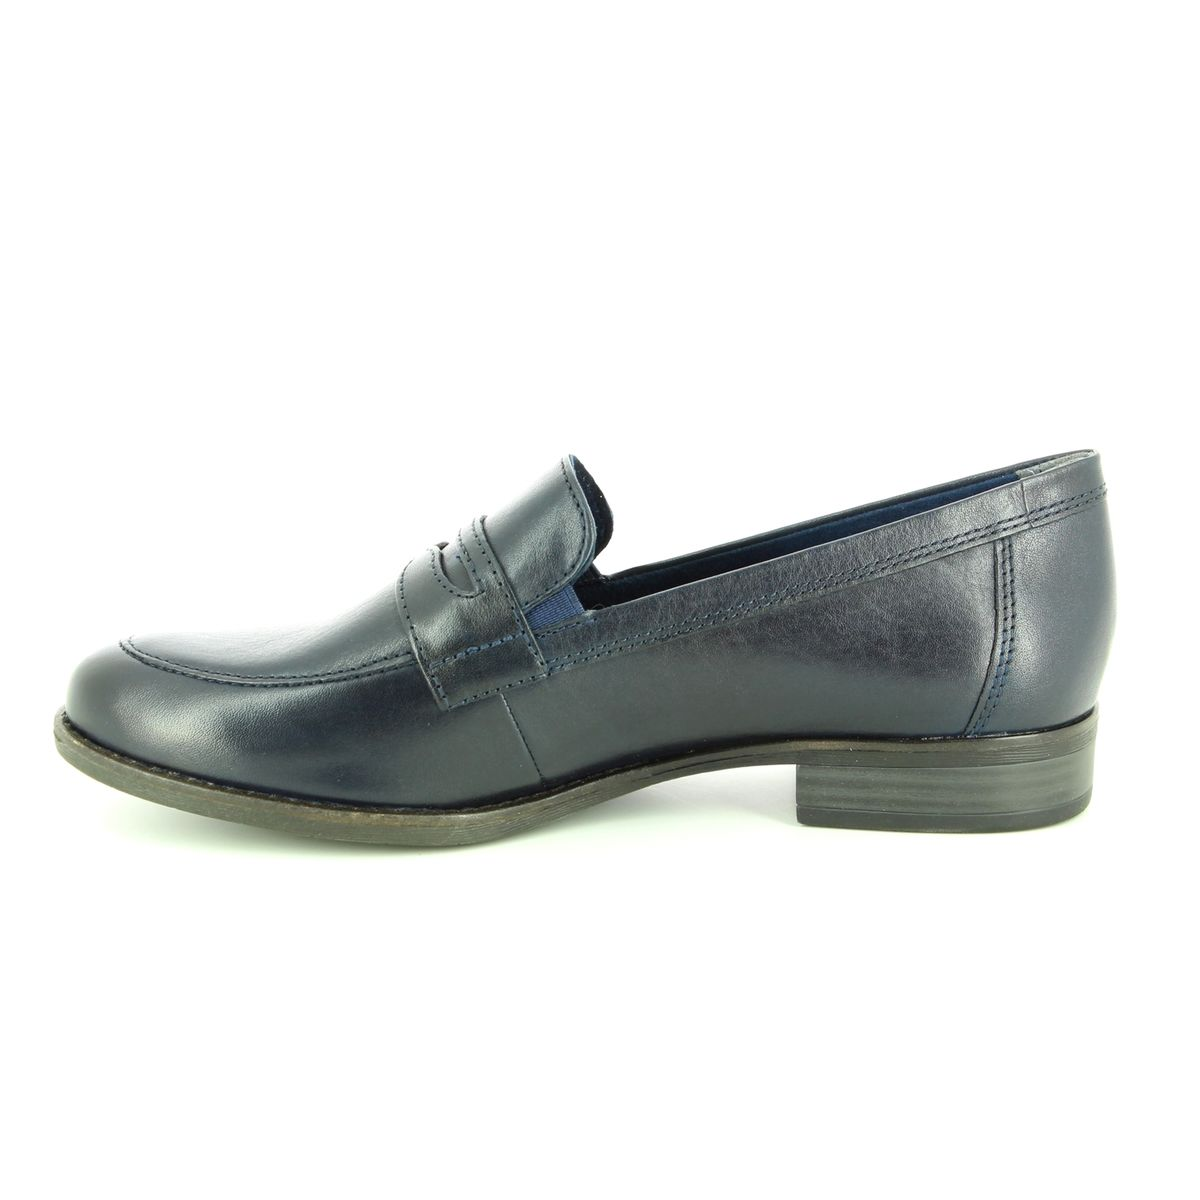 c7281676 Tamaris Loafers - Navy leather - 24215/21/805 MALIMOCC